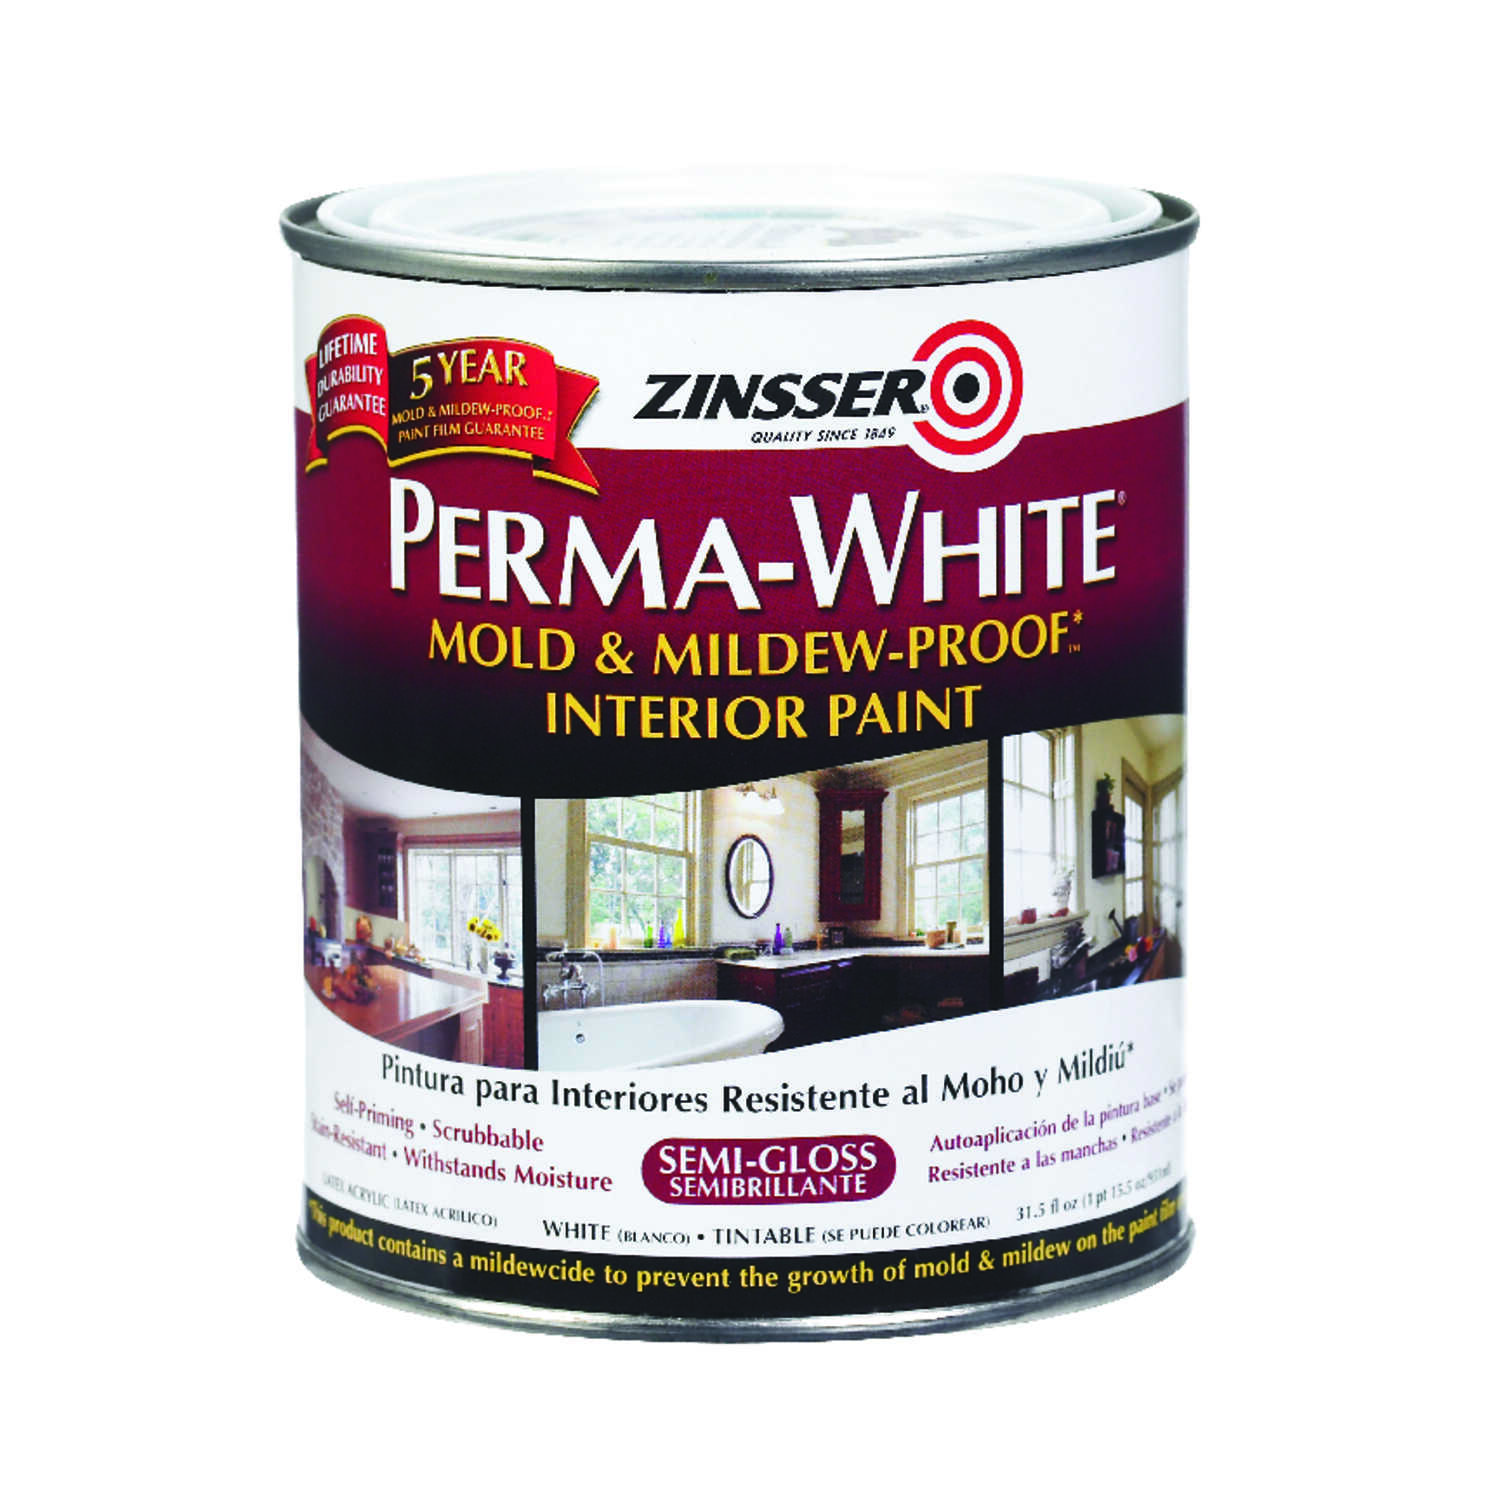 Zinsser  Perma-White  Semi-Gloss  White  1 qt. Mold and Mildew-Proof Paint